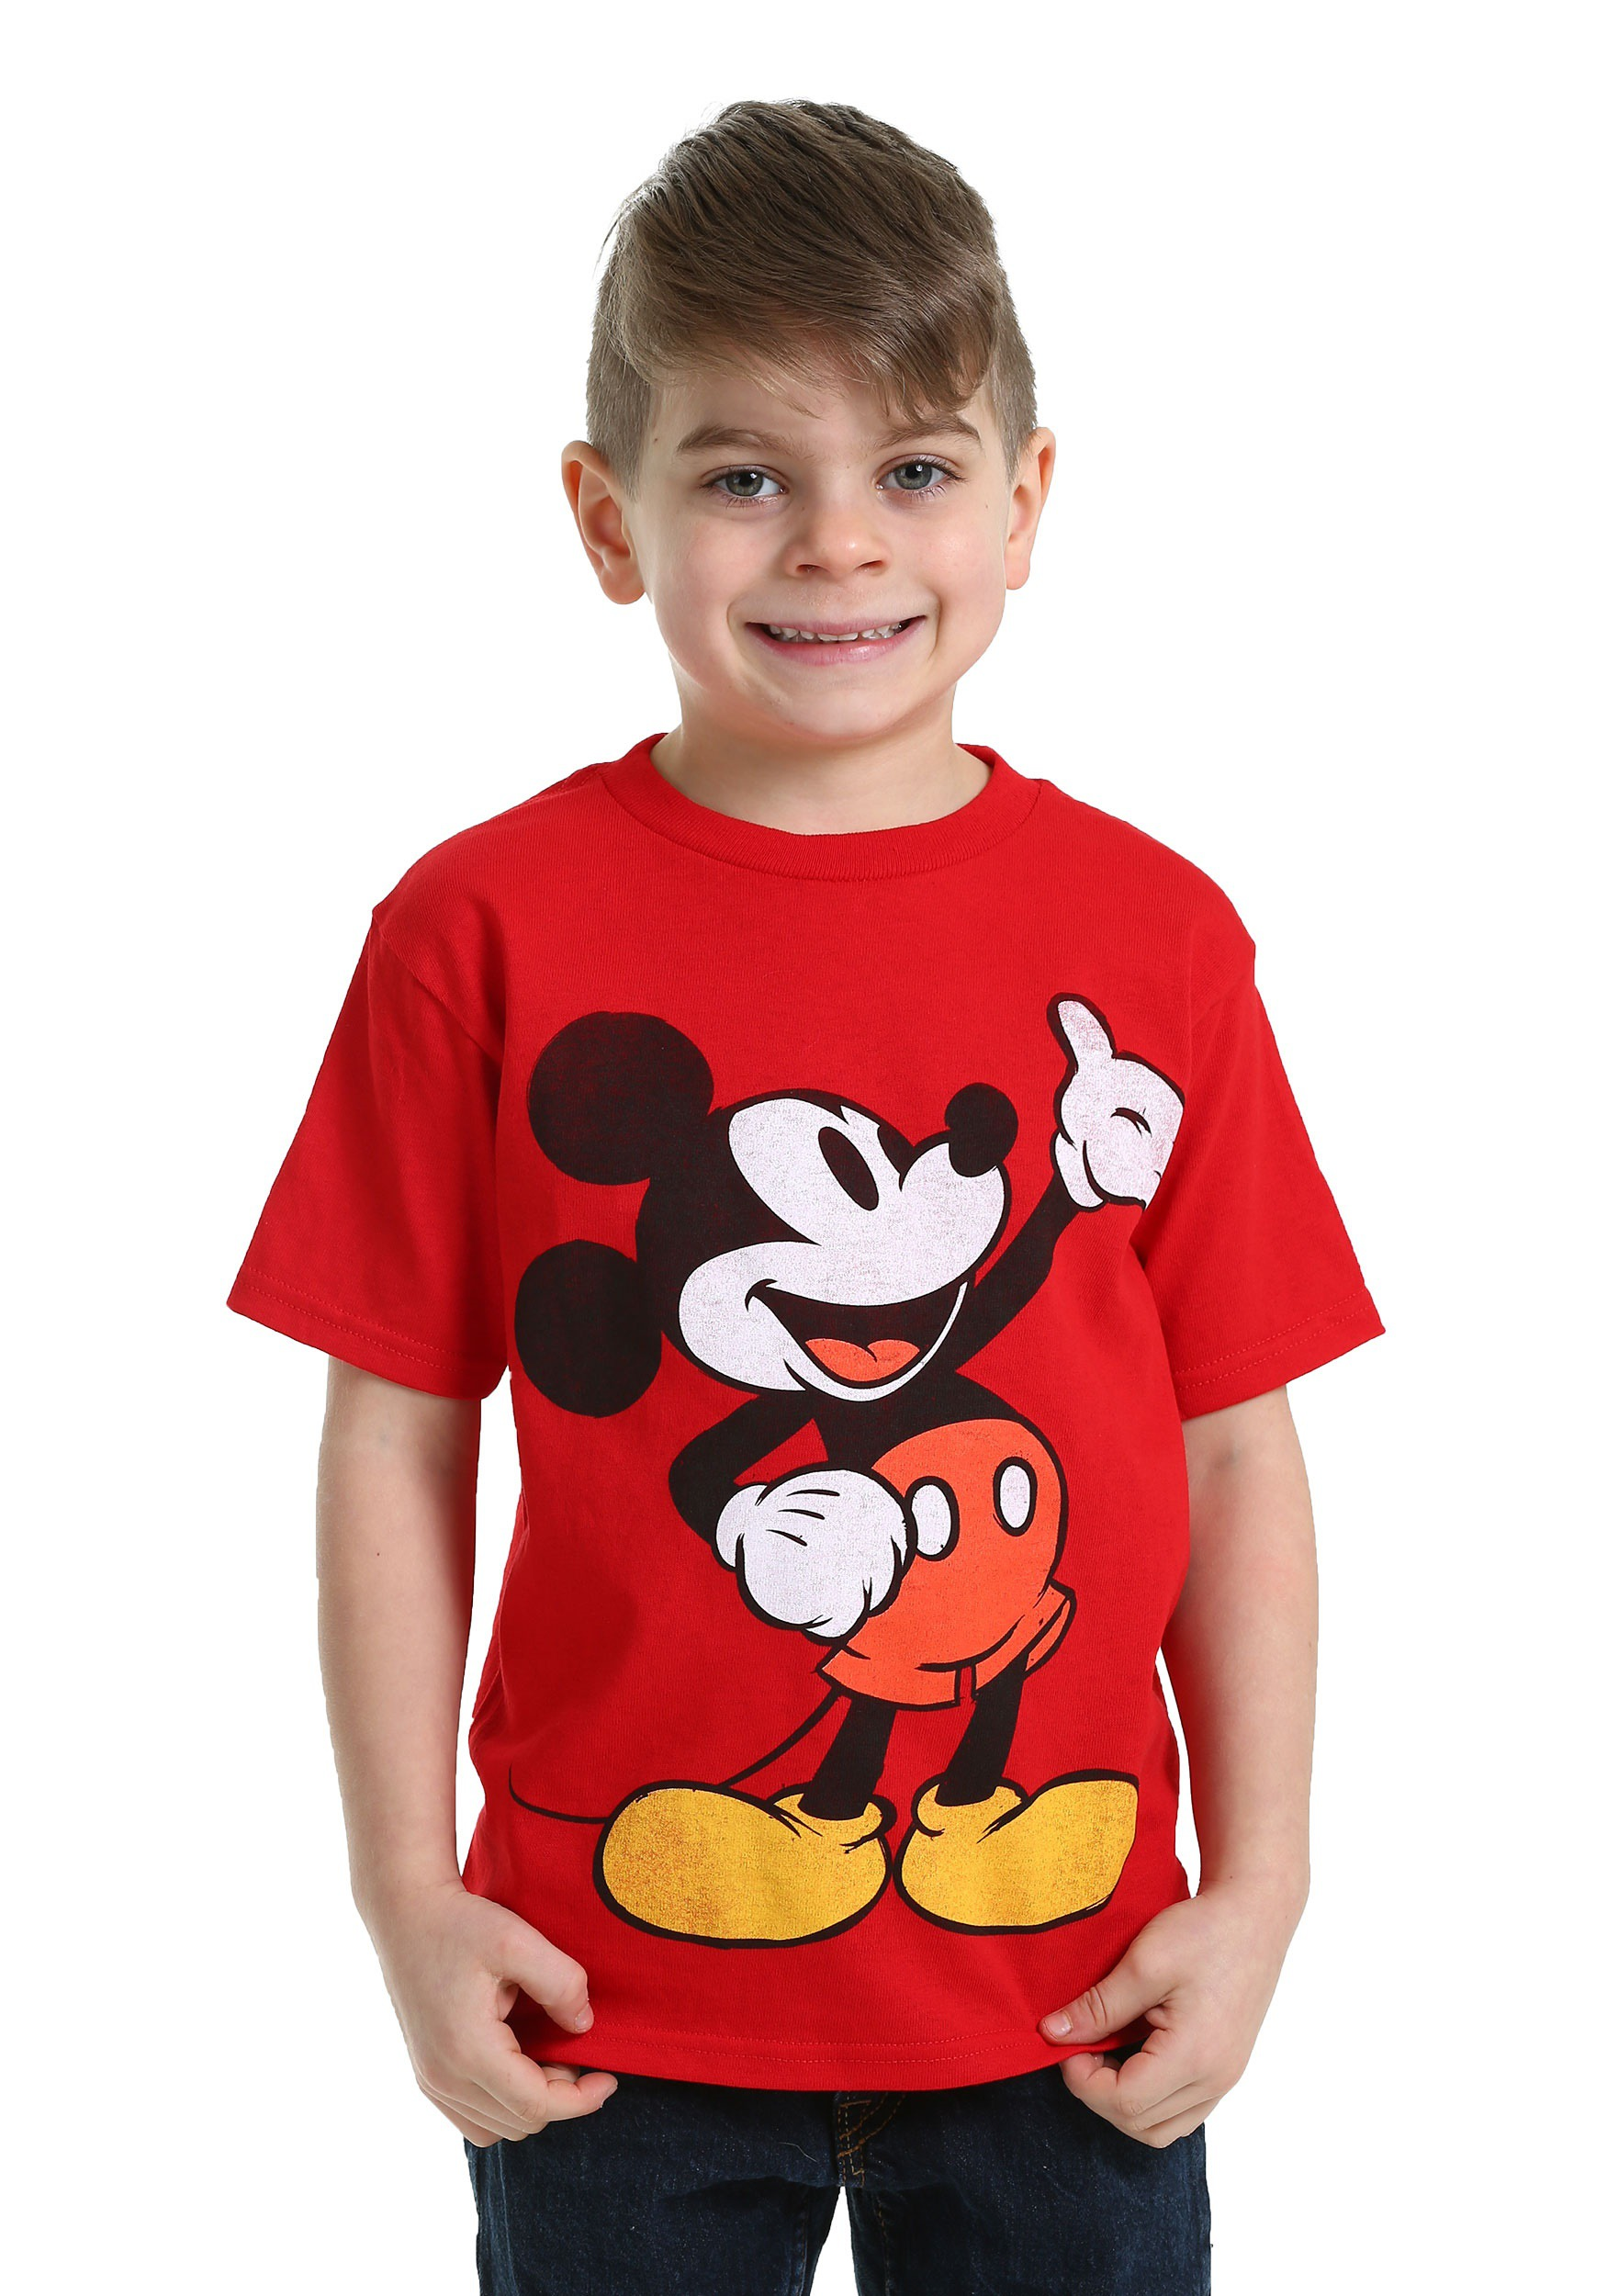 Mickey Mouse Red T Shirt For Boys